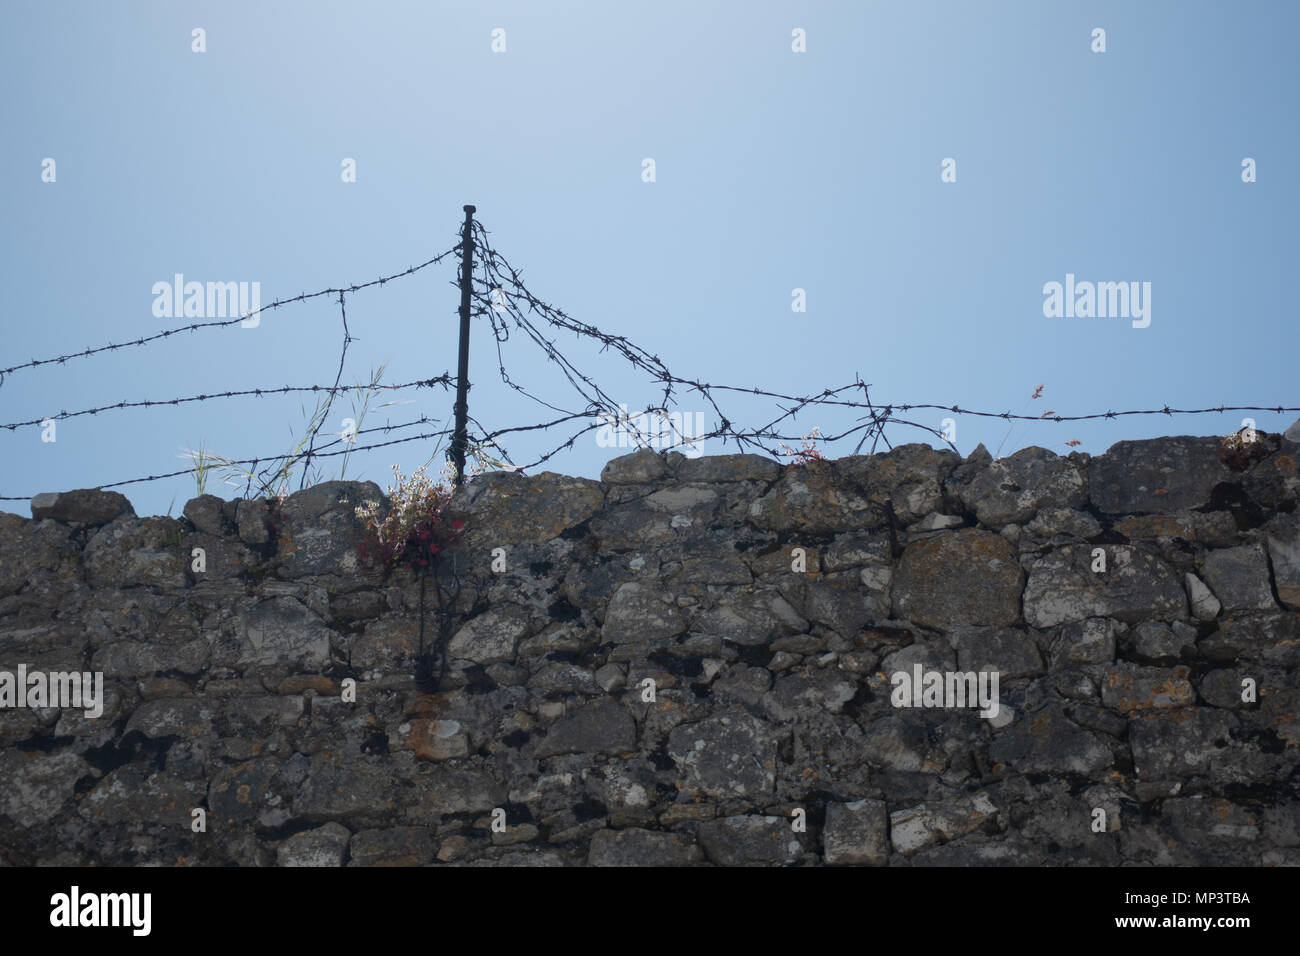 Stone wall with barbed wire against blue sky, wire torn and damaged - Stock Image